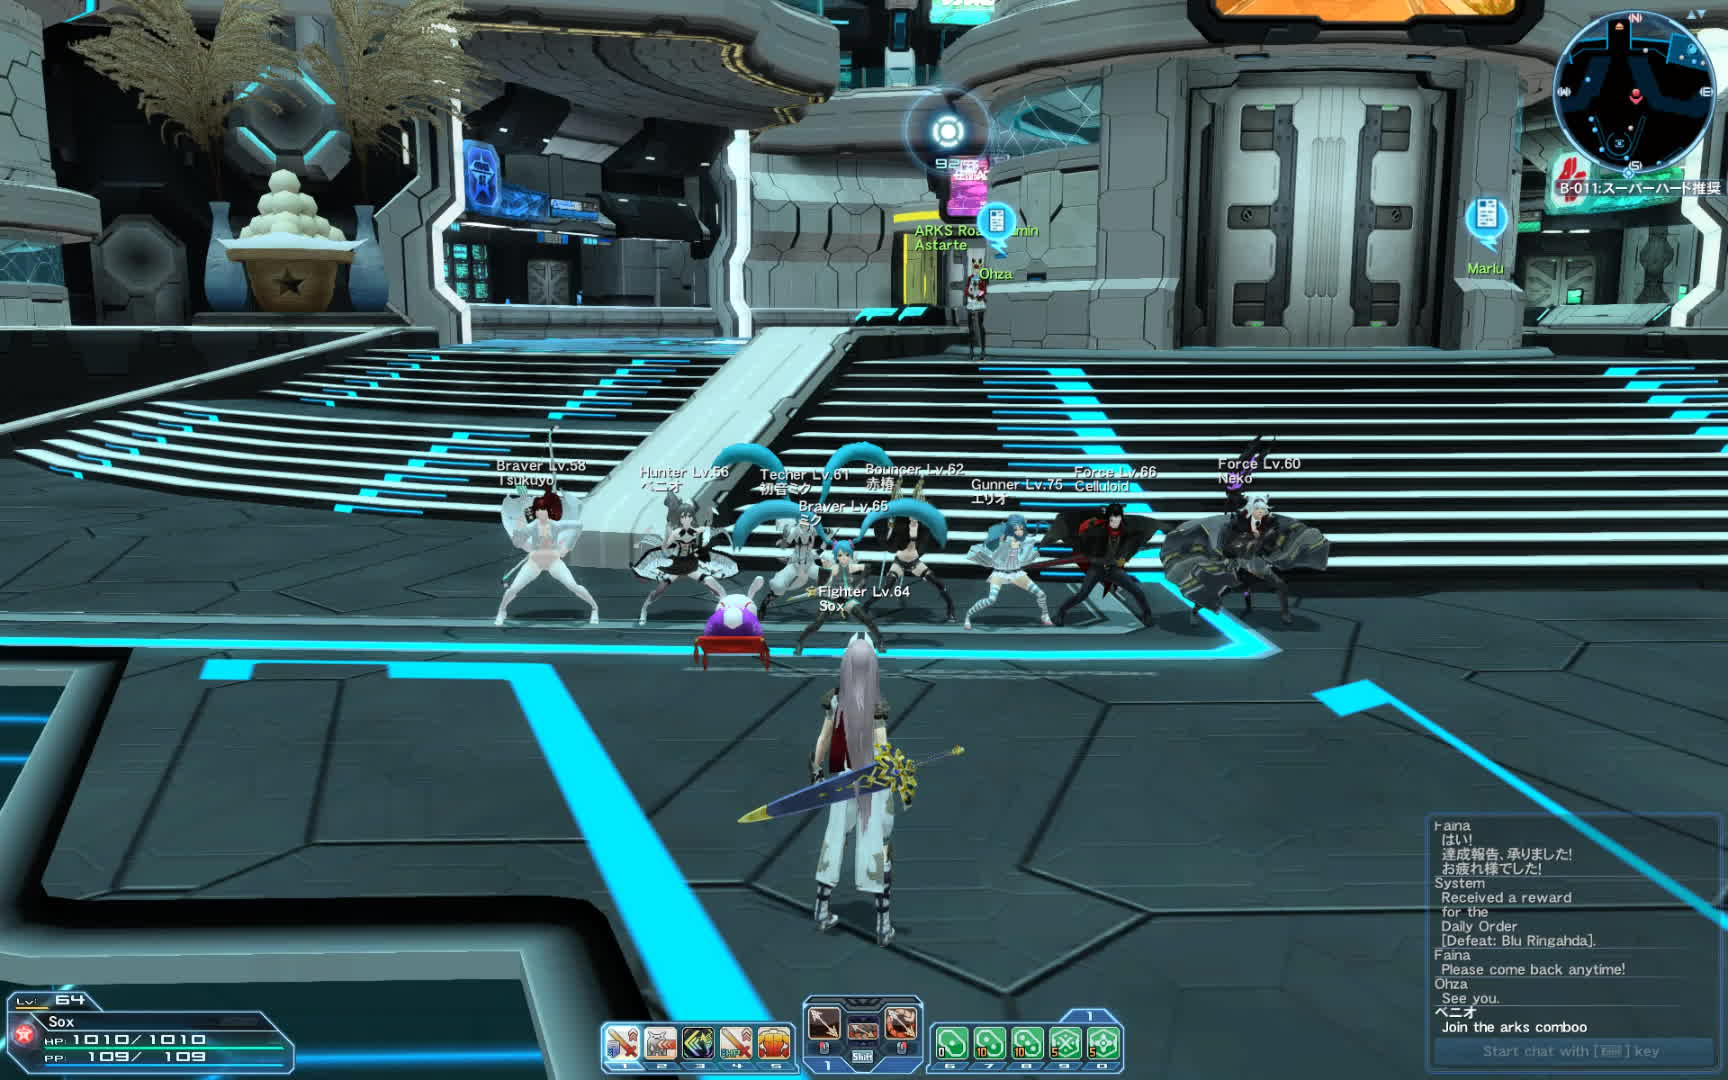 Just another day on PSO2 GIFs